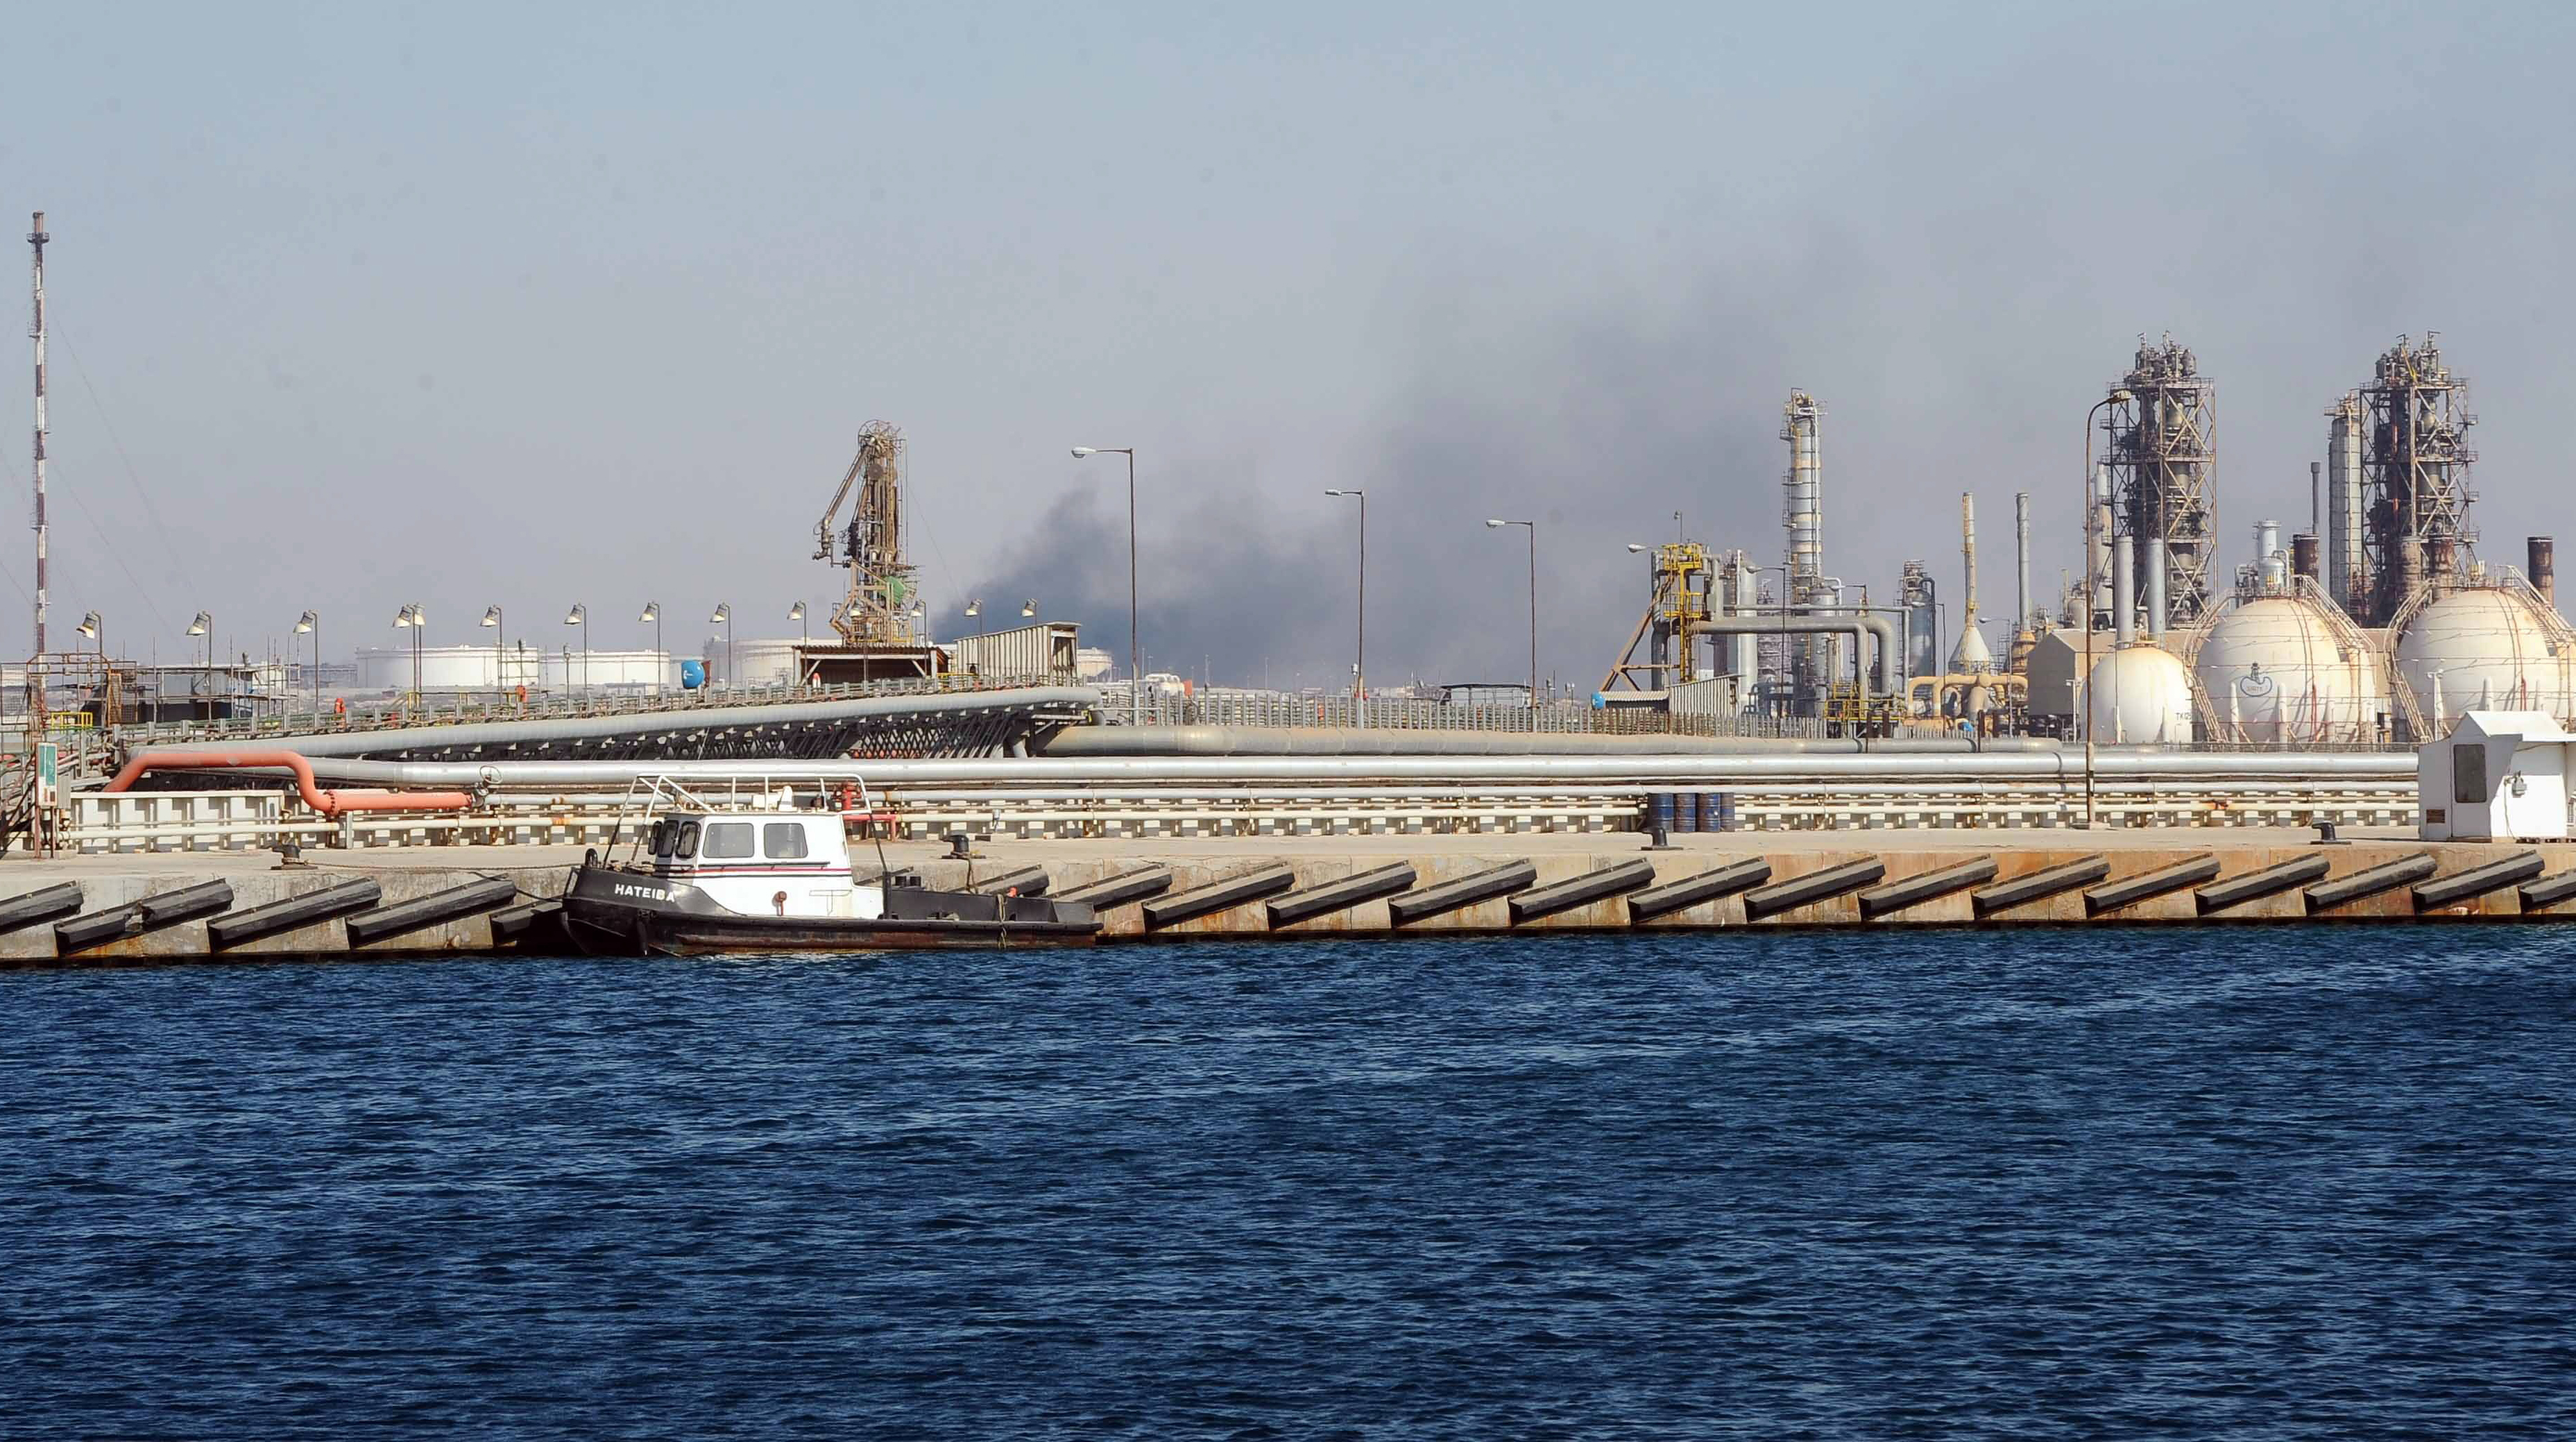 ISS Today: Europe should help get fuel off Libya's fire